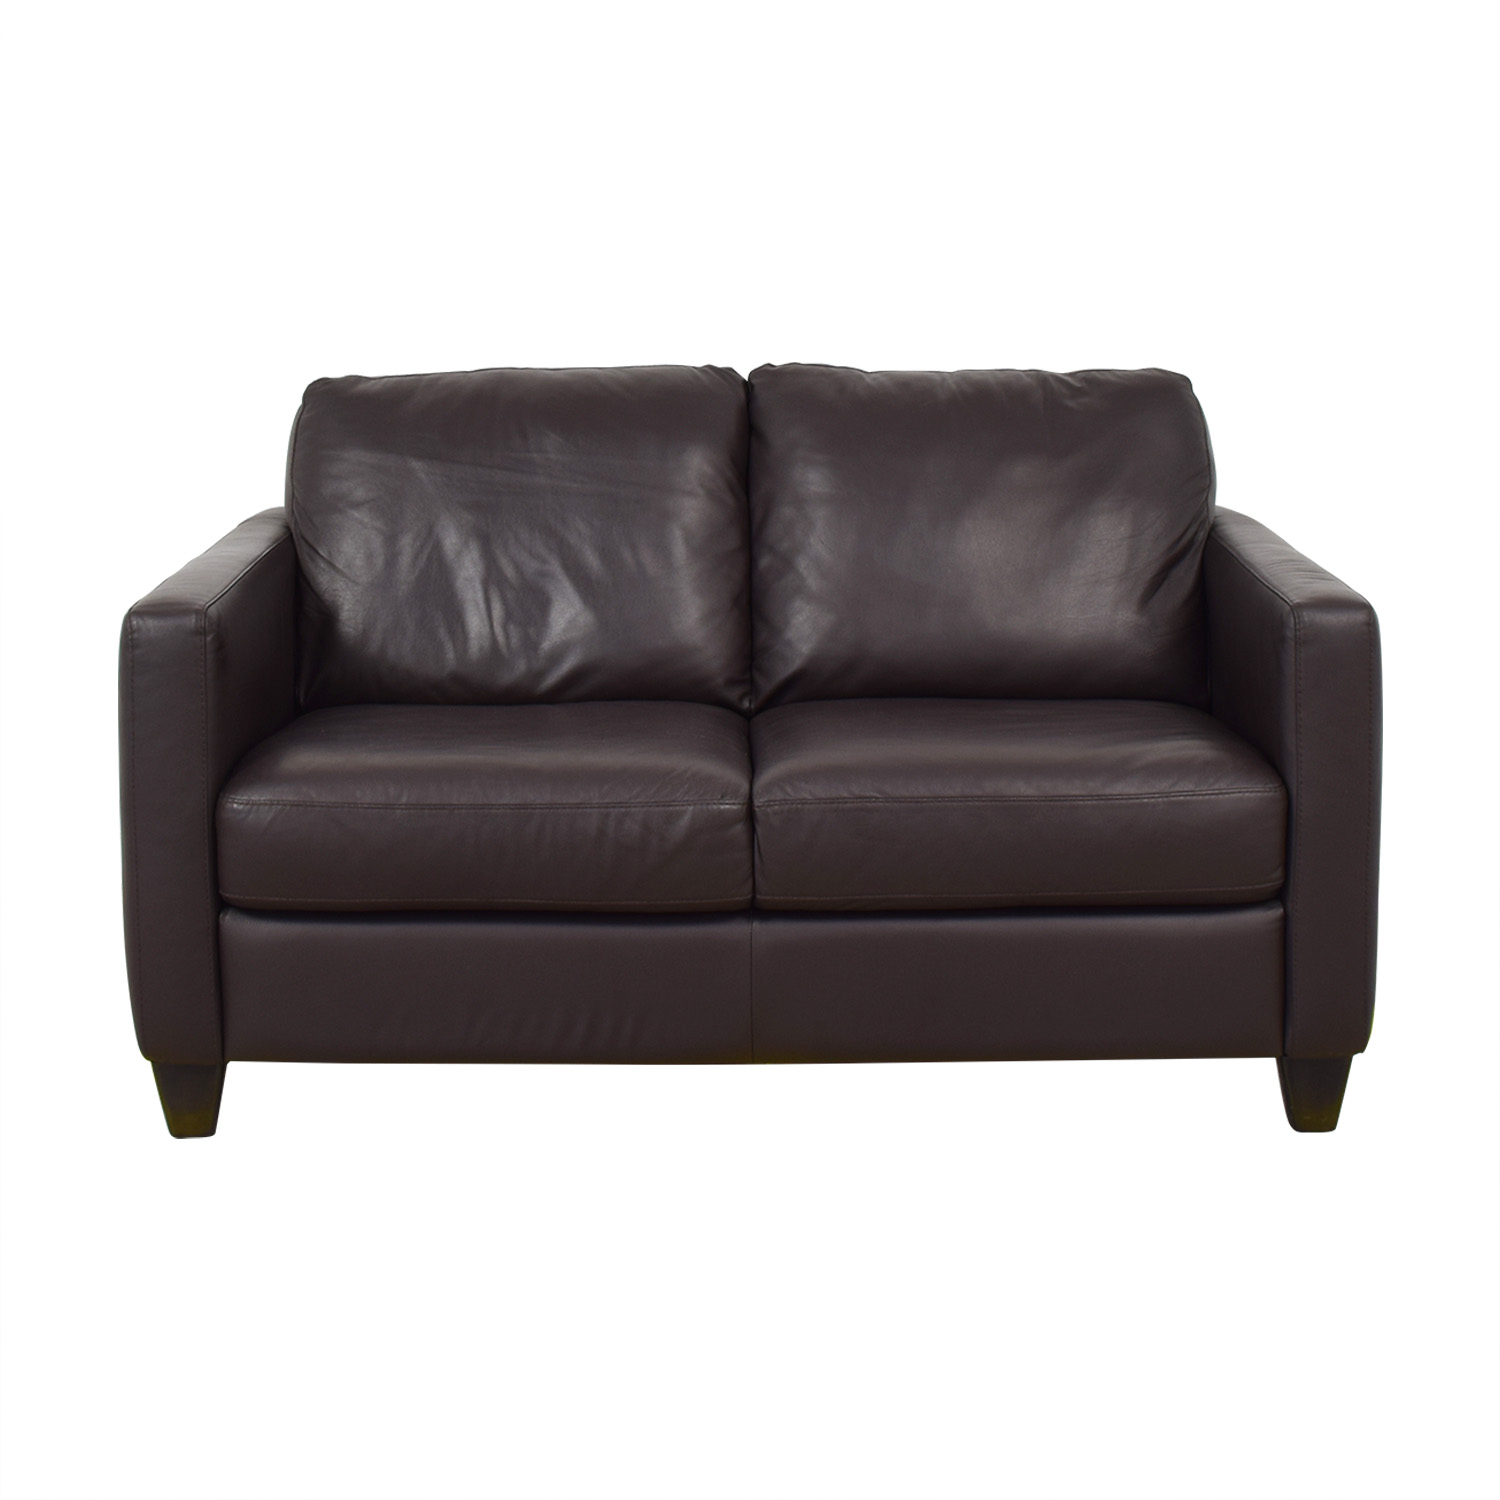 Enjoyable 71 Off Natuzzi Natuzzi Editions Leather Loveseat Sofas Gmtry Best Dining Table And Chair Ideas Images Gmtryco